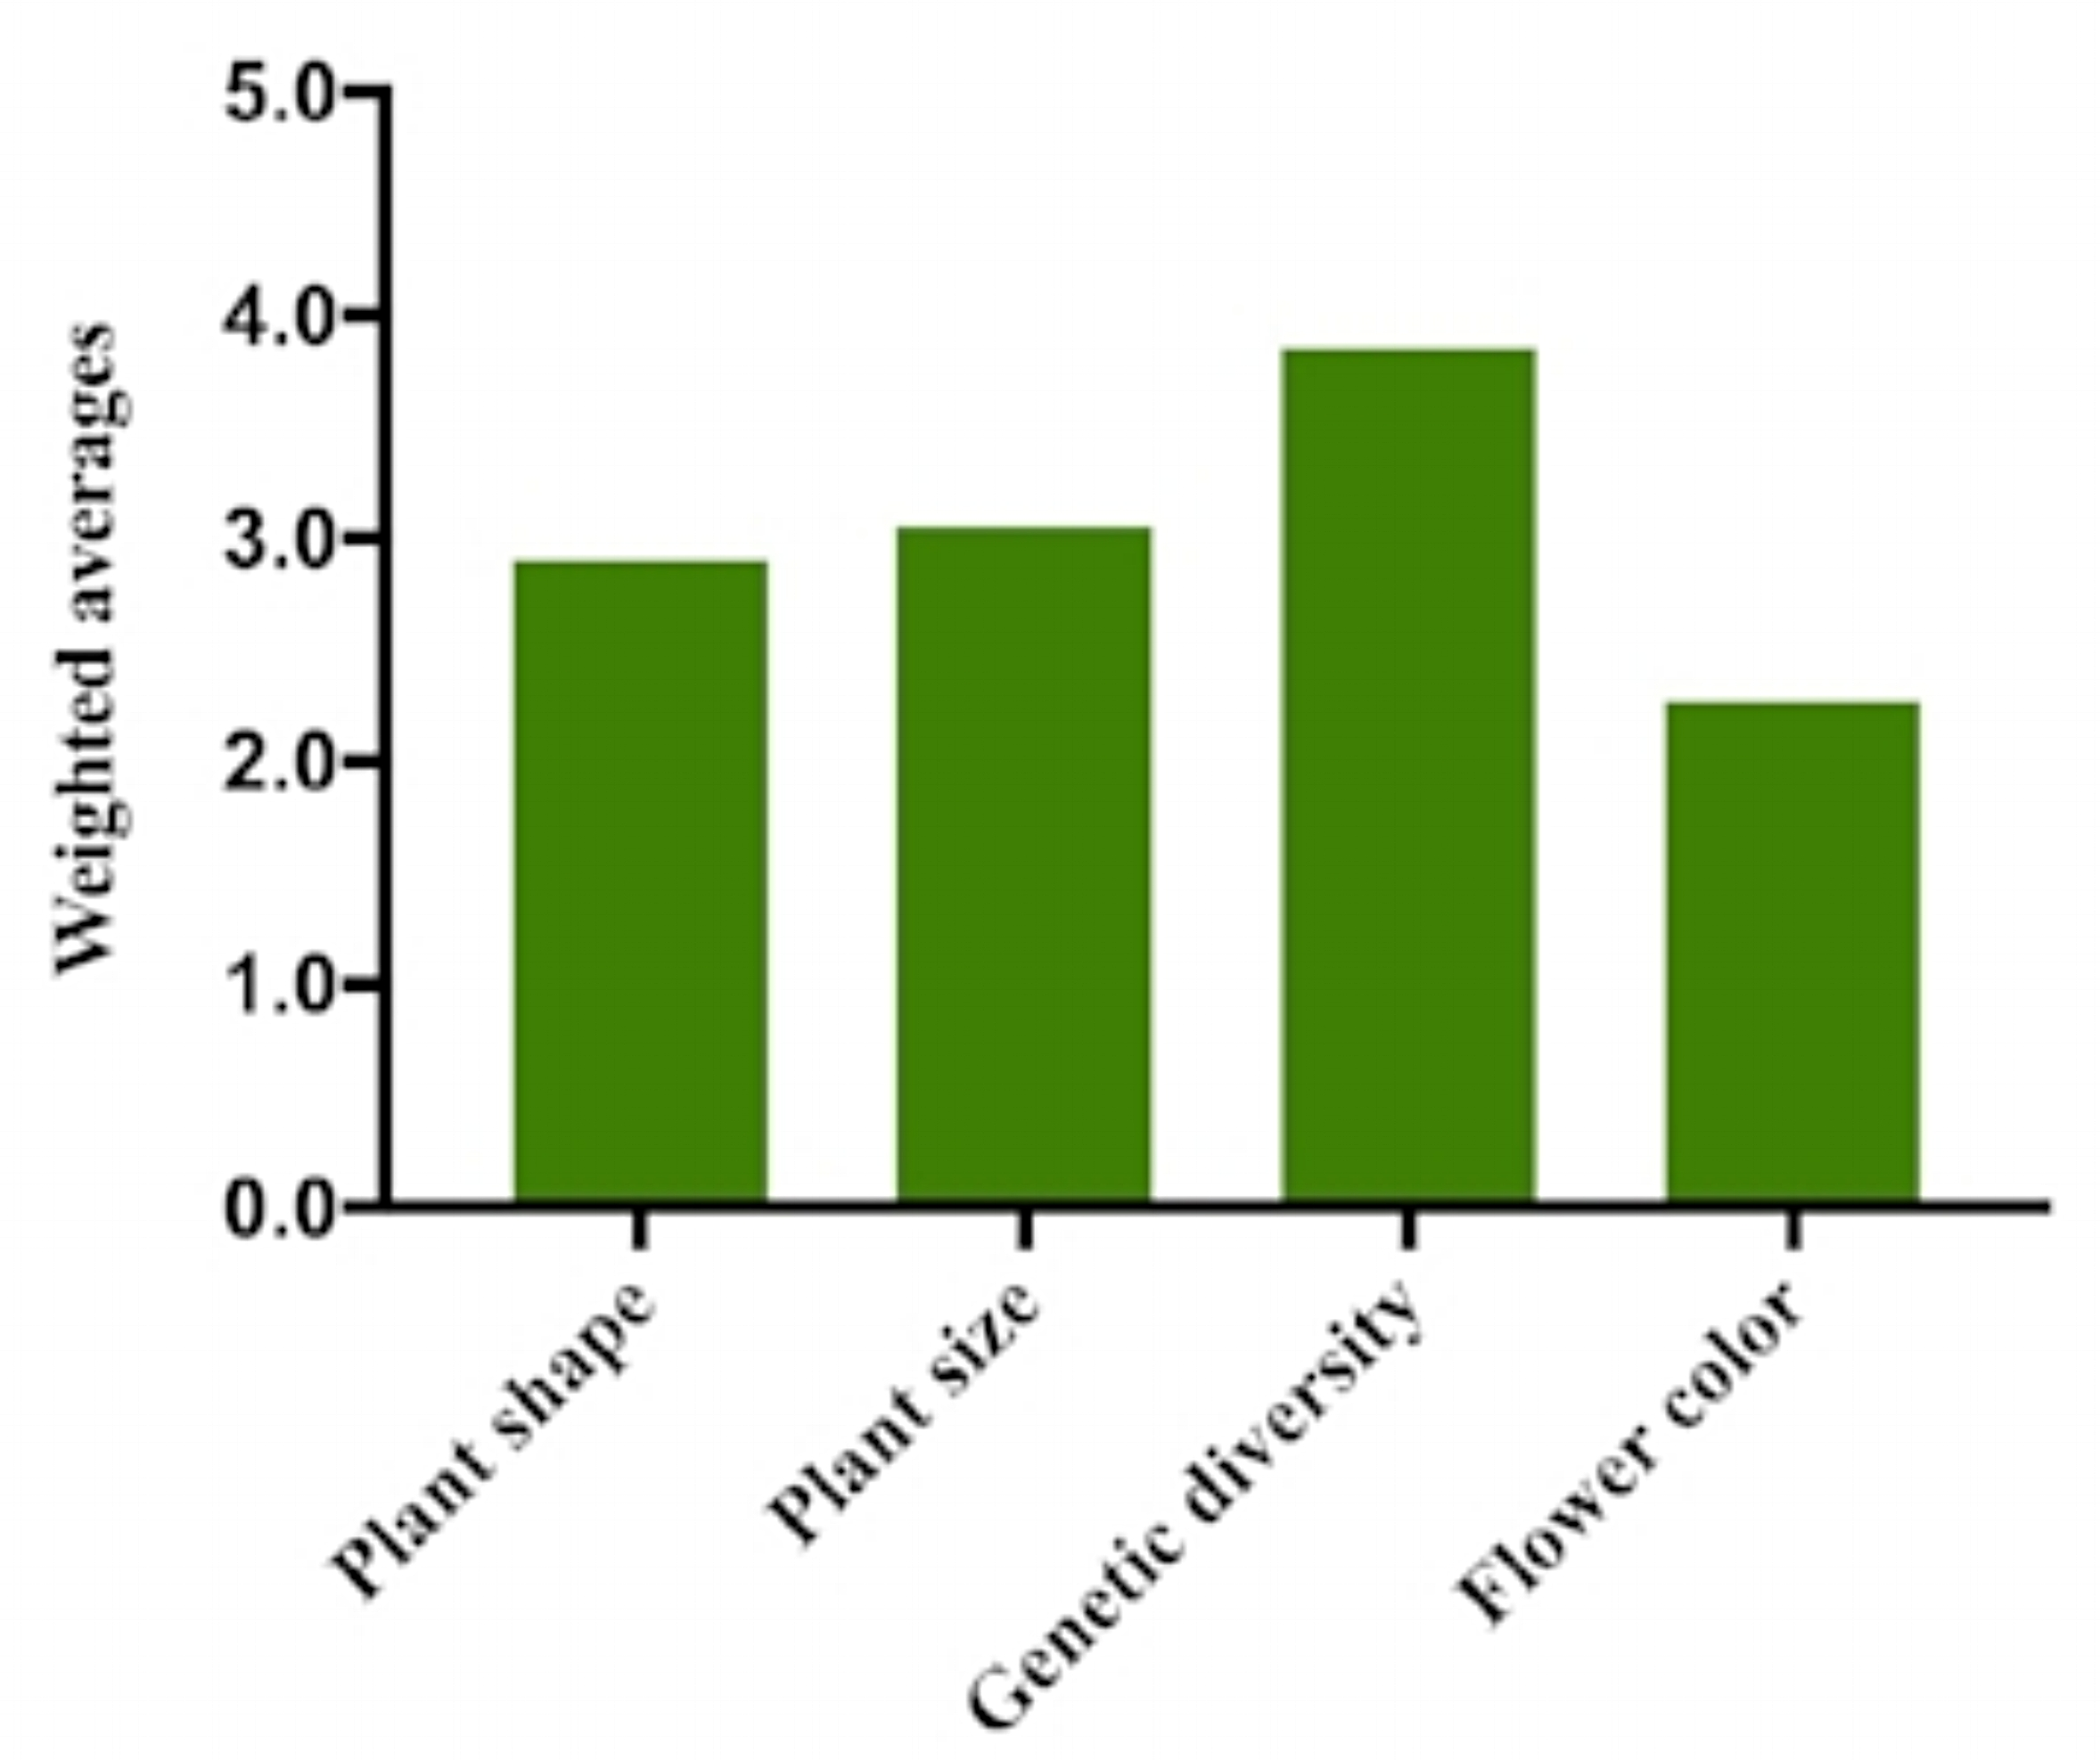 """- Figure 2: Weighted averages of responses for four questions ranking effect of consistency in plant characteristics on choice by consumers. Responses were ranked 1 through 5 from """"Not at all important"""" to """"Extremely important."""" The four questions are: 1) How important is consistency in plant shape when choosing natives for your landscape? 2) How important is consistency in plant size when choosing natives for your landscape? 3) How important is genetic diversity in your decision to use native plants? 4) How important is consistency in flower color when choosing natives for your landscape? Results show that consumers value genetic diversity in native plants more than phenotypic characteristics commonly targeted in nativar propagation. (N=124)"""